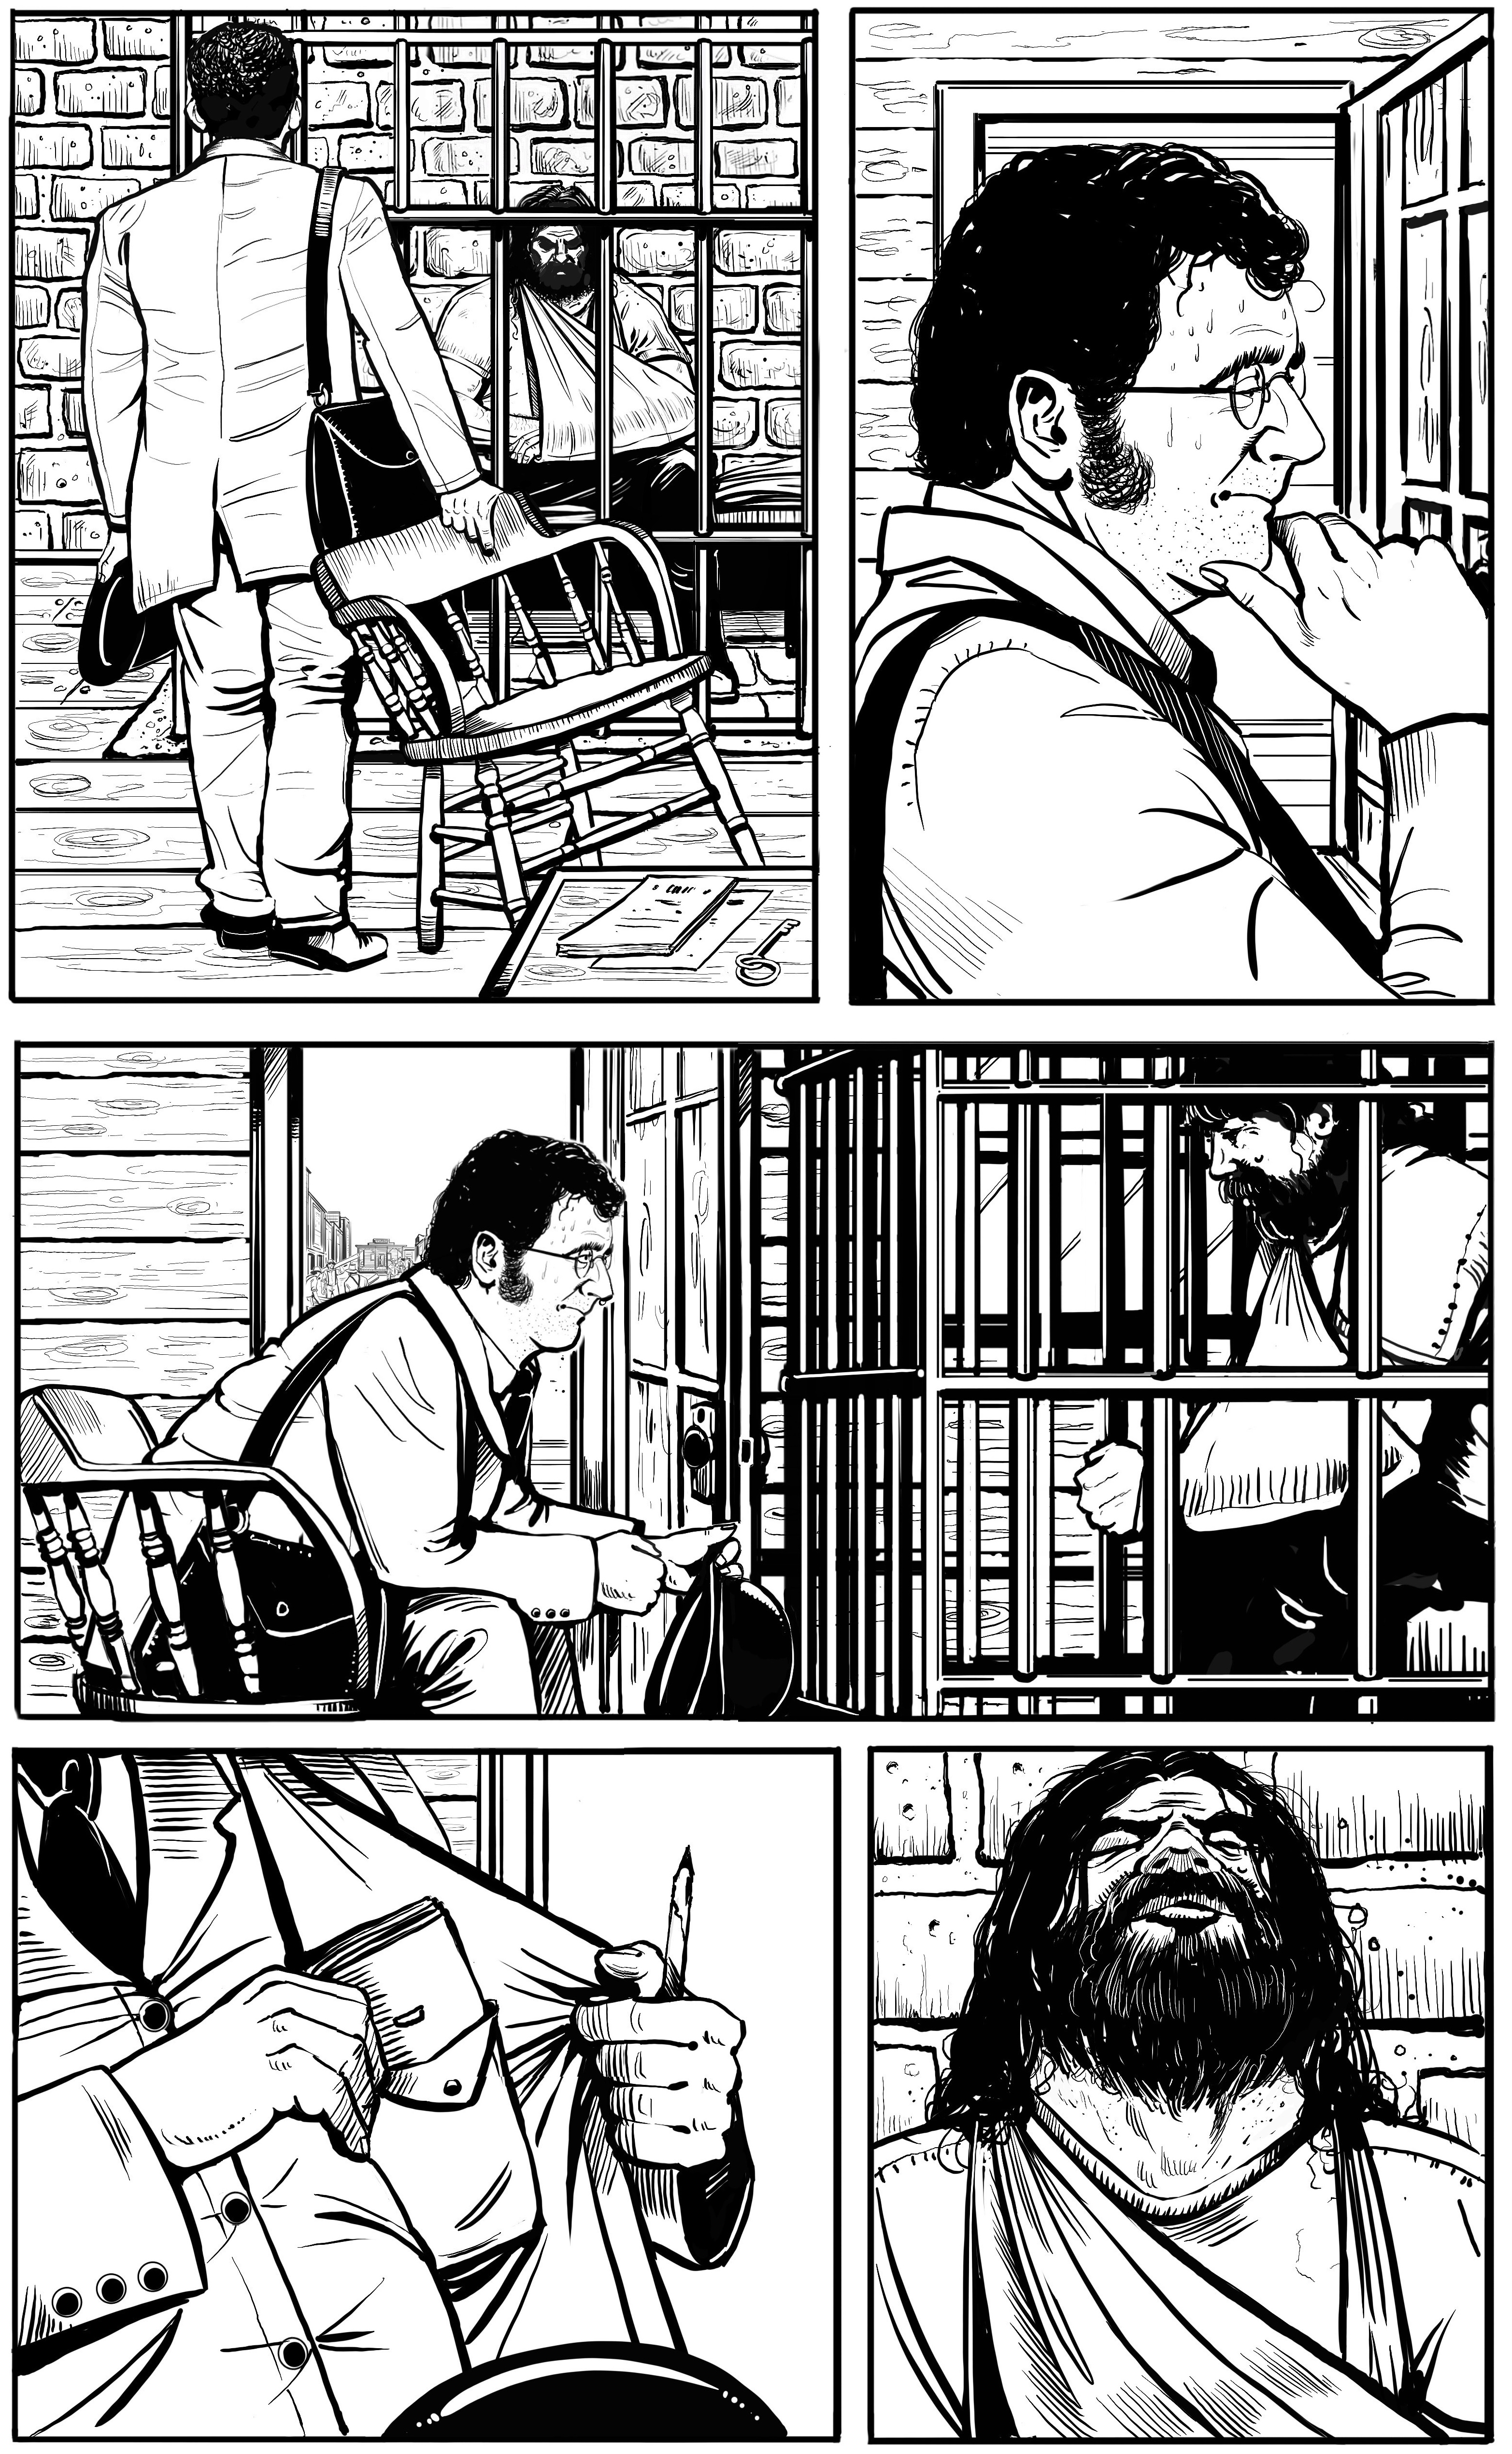 THE LONE RANGER PAGE 3